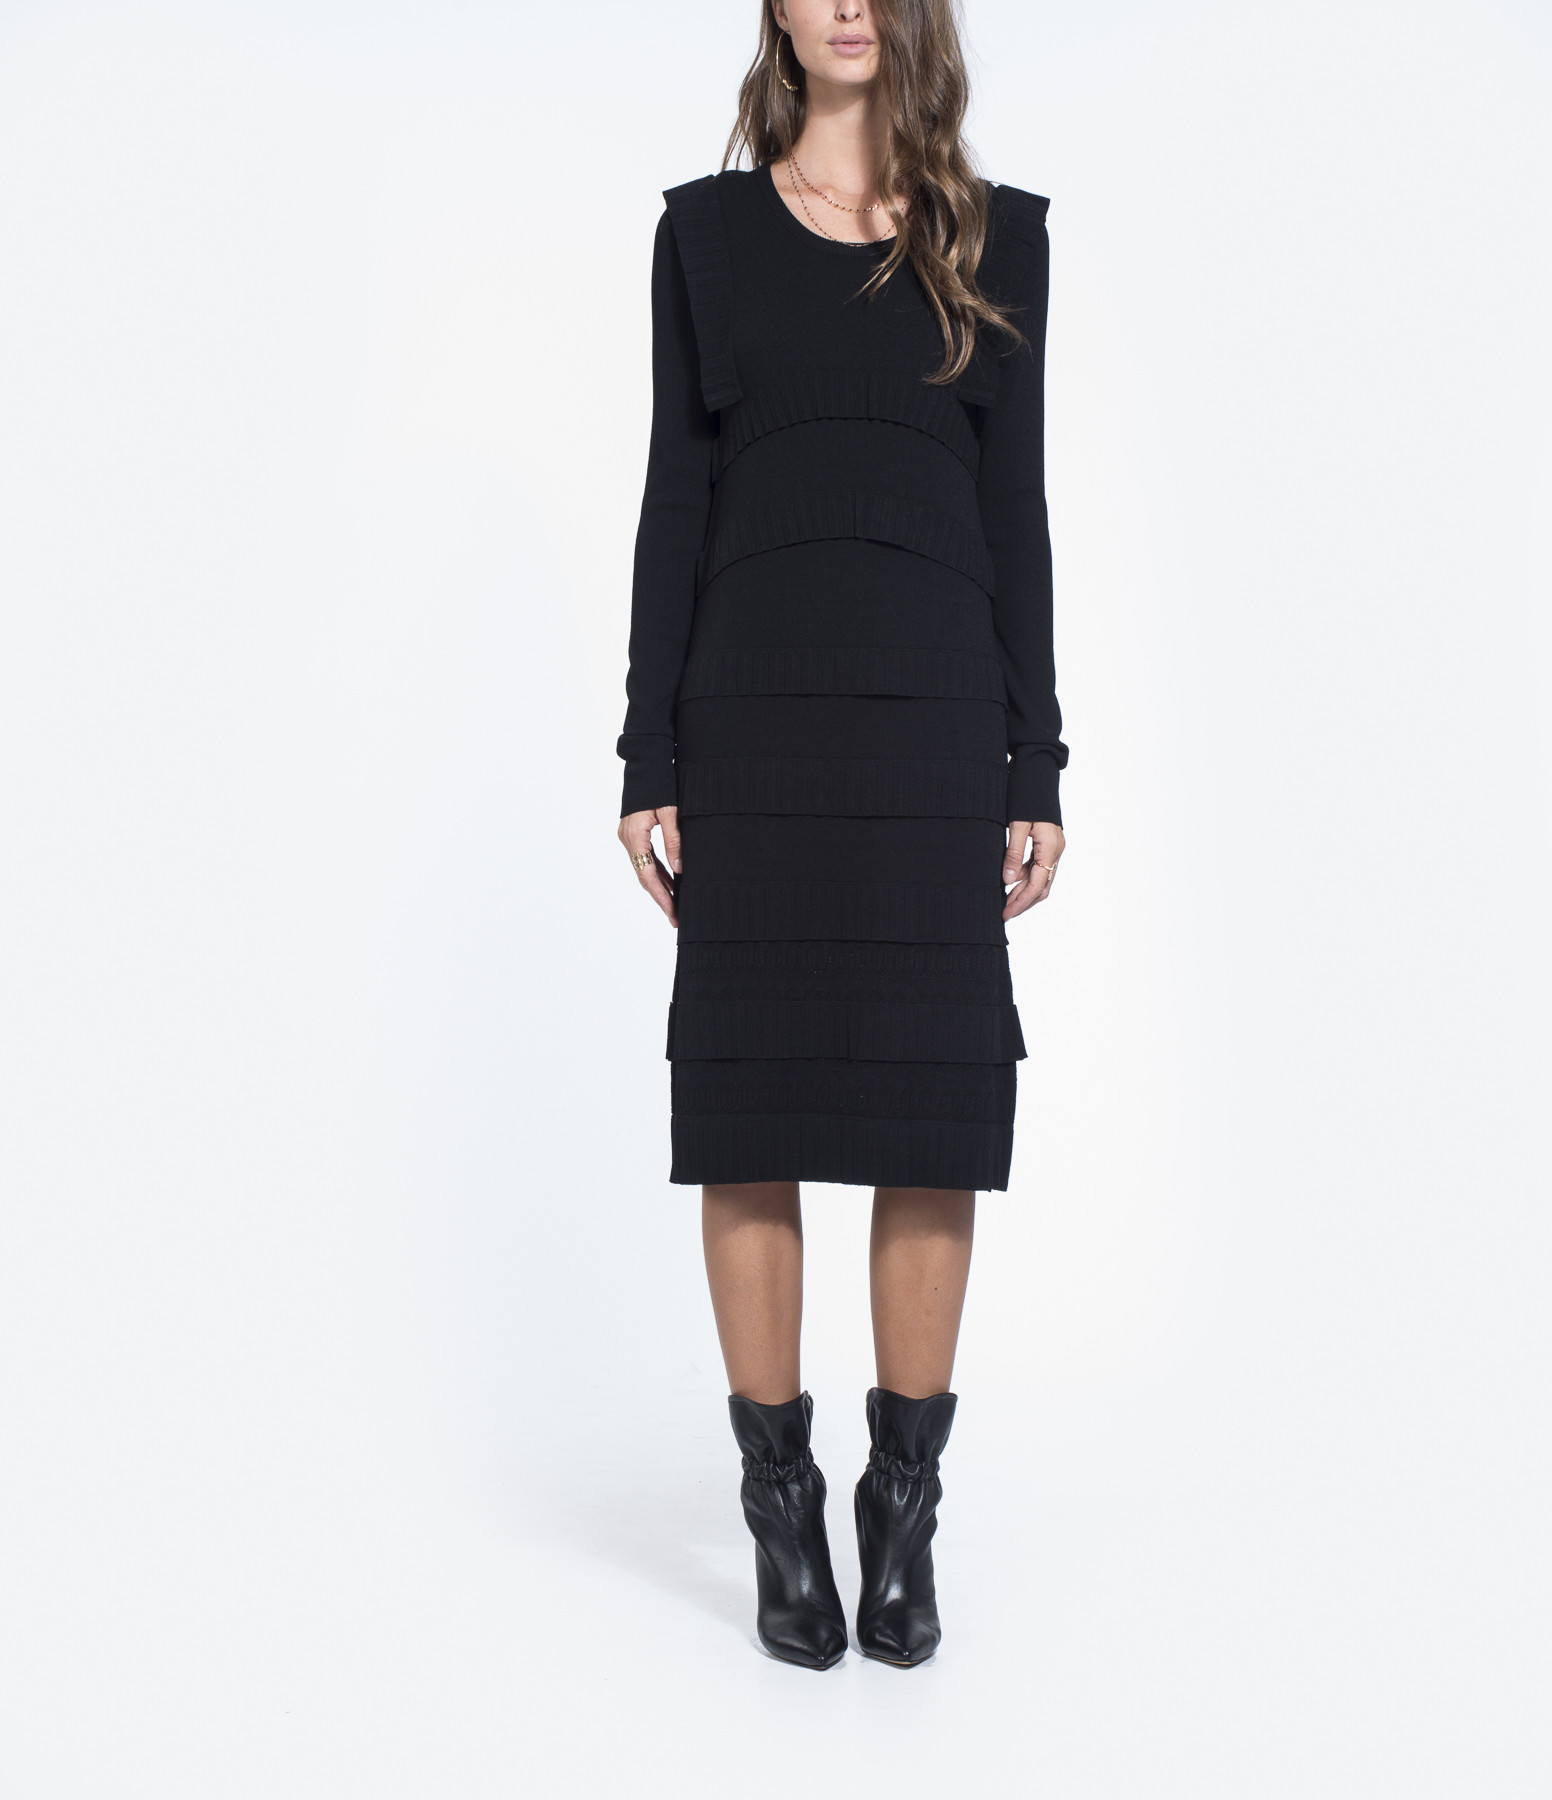 CARVEN - Robe Volants Noir